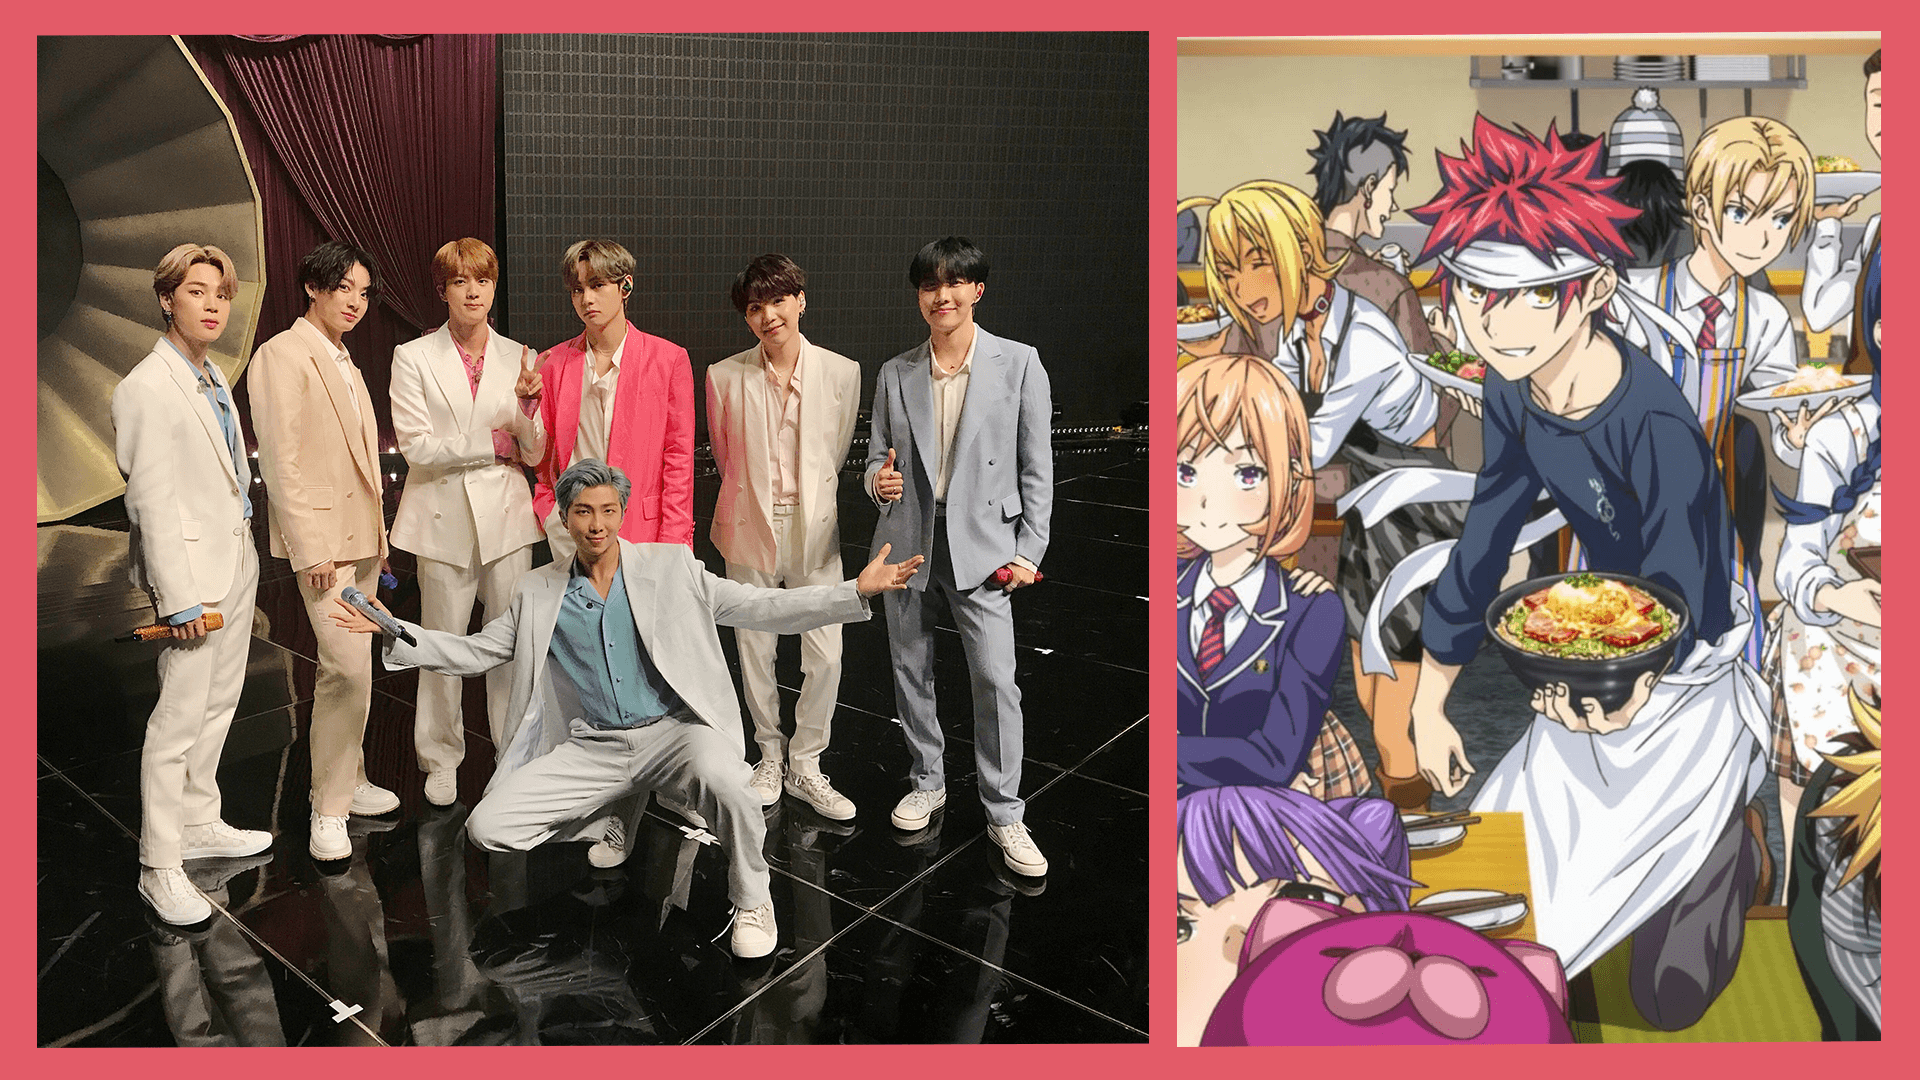 Online News Roundup: BTS' New Album 'BE', Lily Collins, and 'Food Wars'